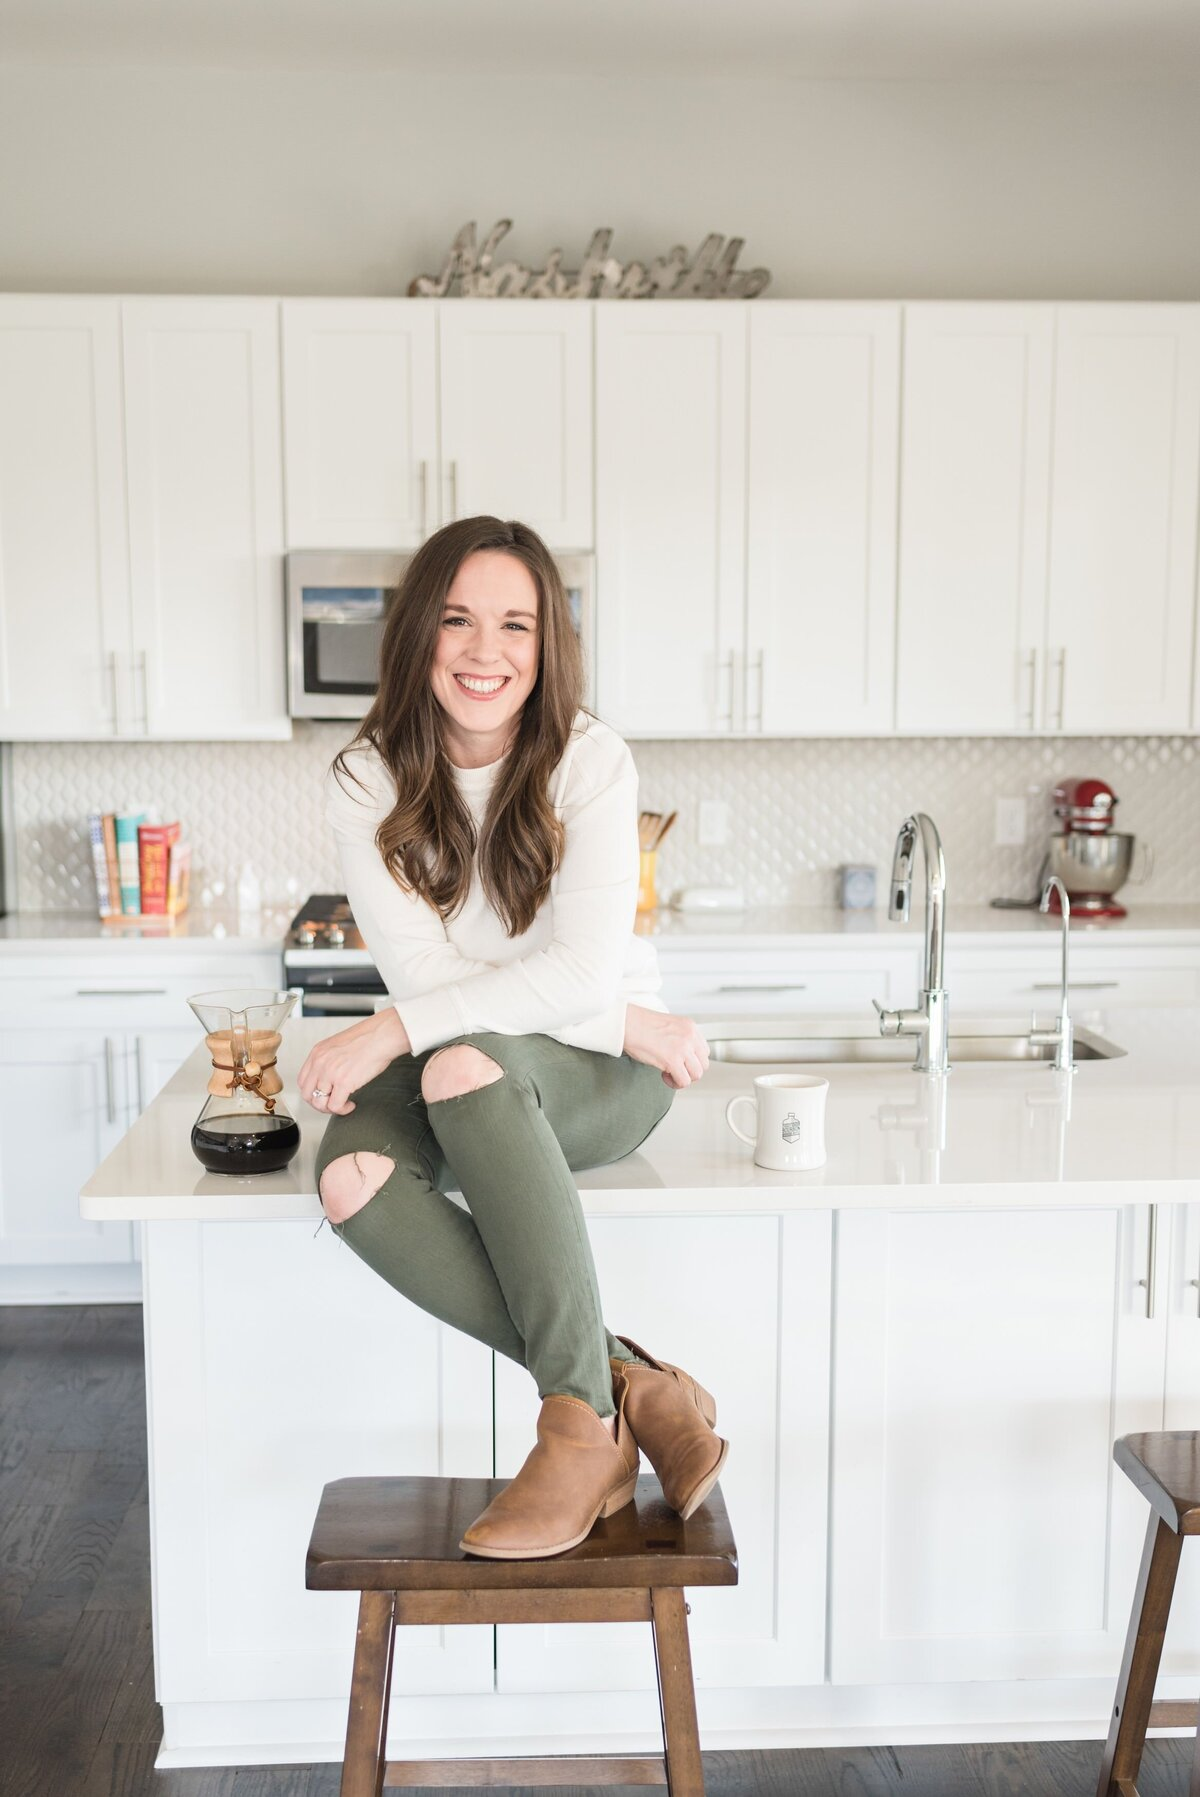 Casual lifestyle headshot of lady sitting on kitchen counter with her feet crossed and resting on a bar stool